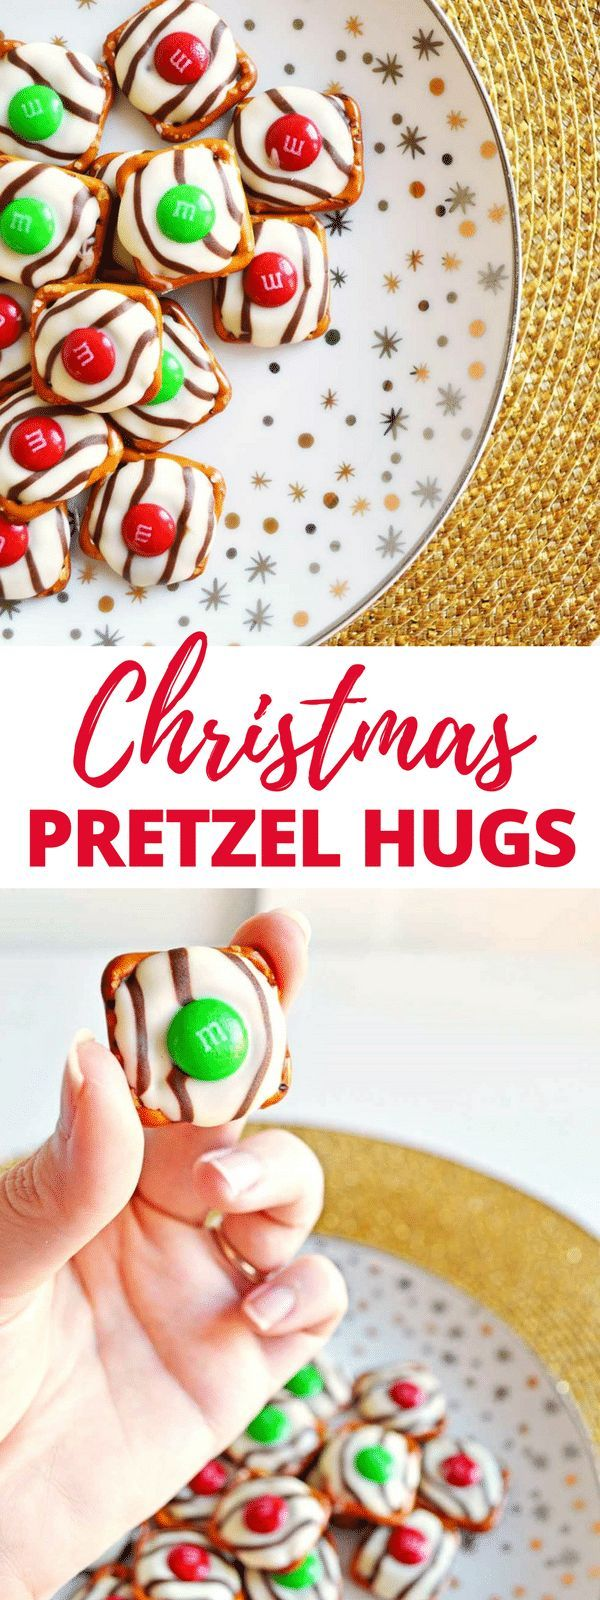 Salty-sweet Christmas pretzel hugs treats are quick and easy to make with just 3 ingredients: square pretzels, M&Ms, and Hershey's Hugs. #ChristmasTreat #SaltySweet #HolidayRecipes #EasyRecipe #3ingredient